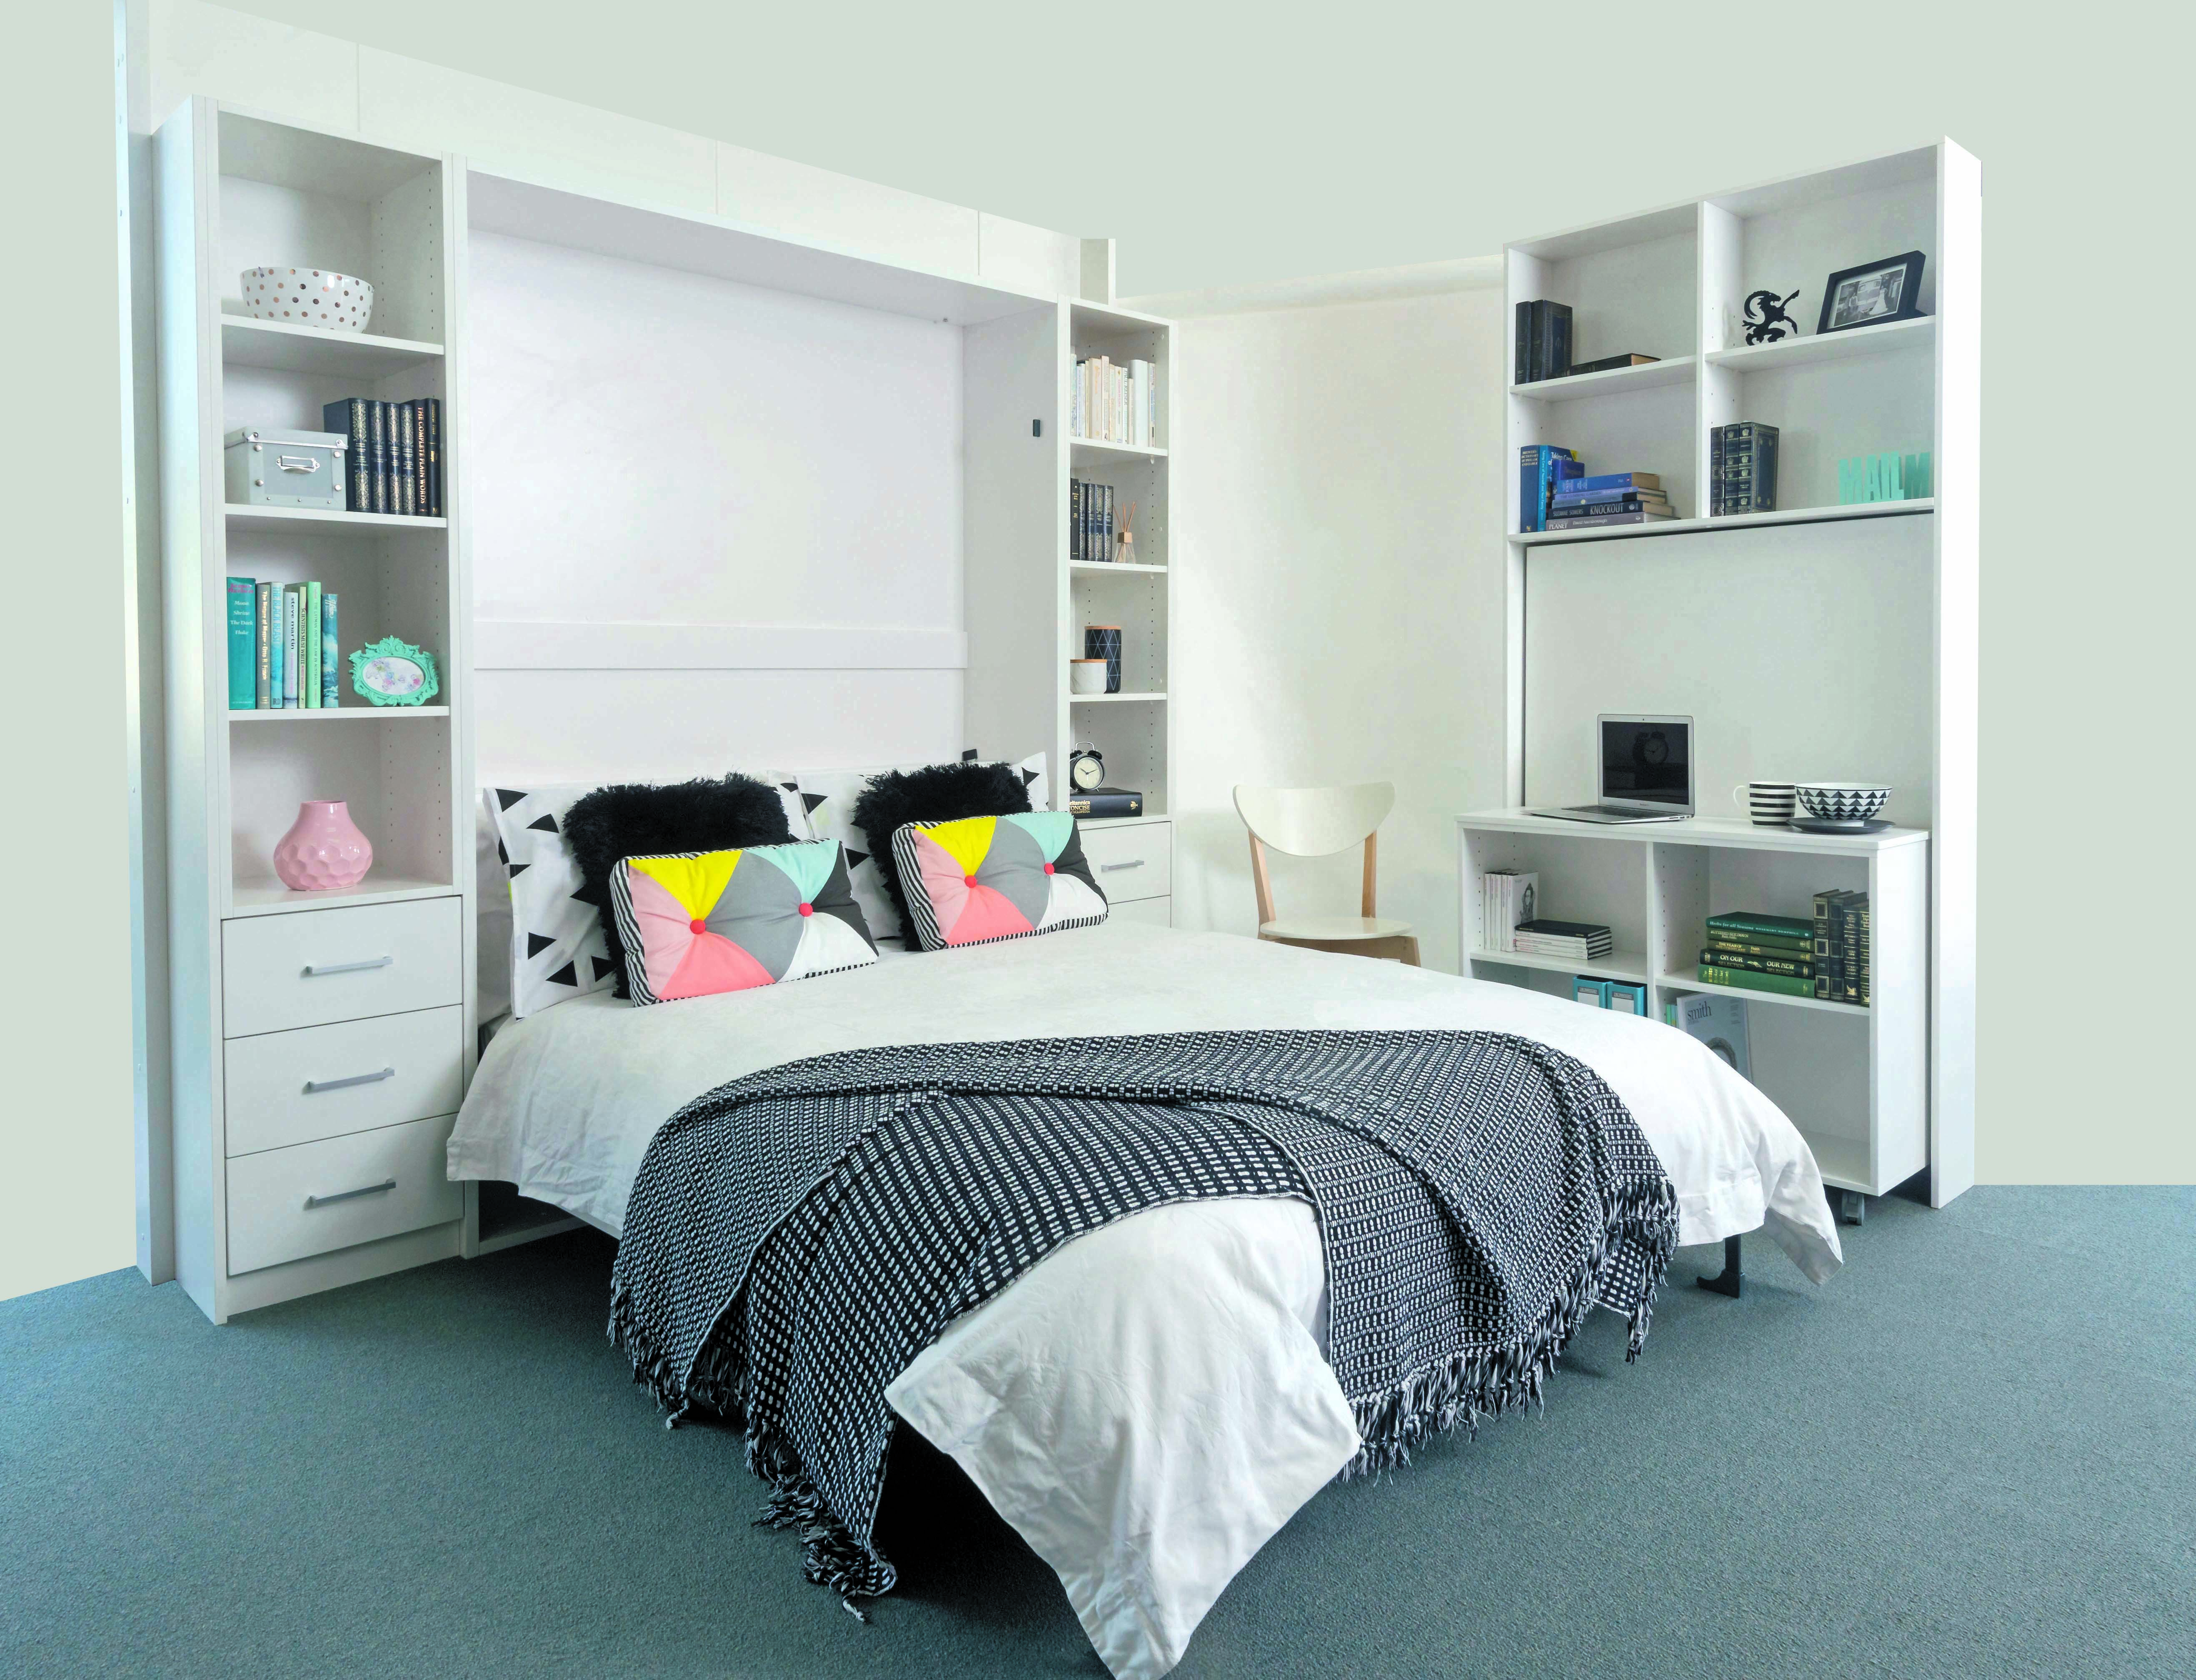 Organised interiors diy brisbane off the wall bed do it yourself amipublicfo Gallery